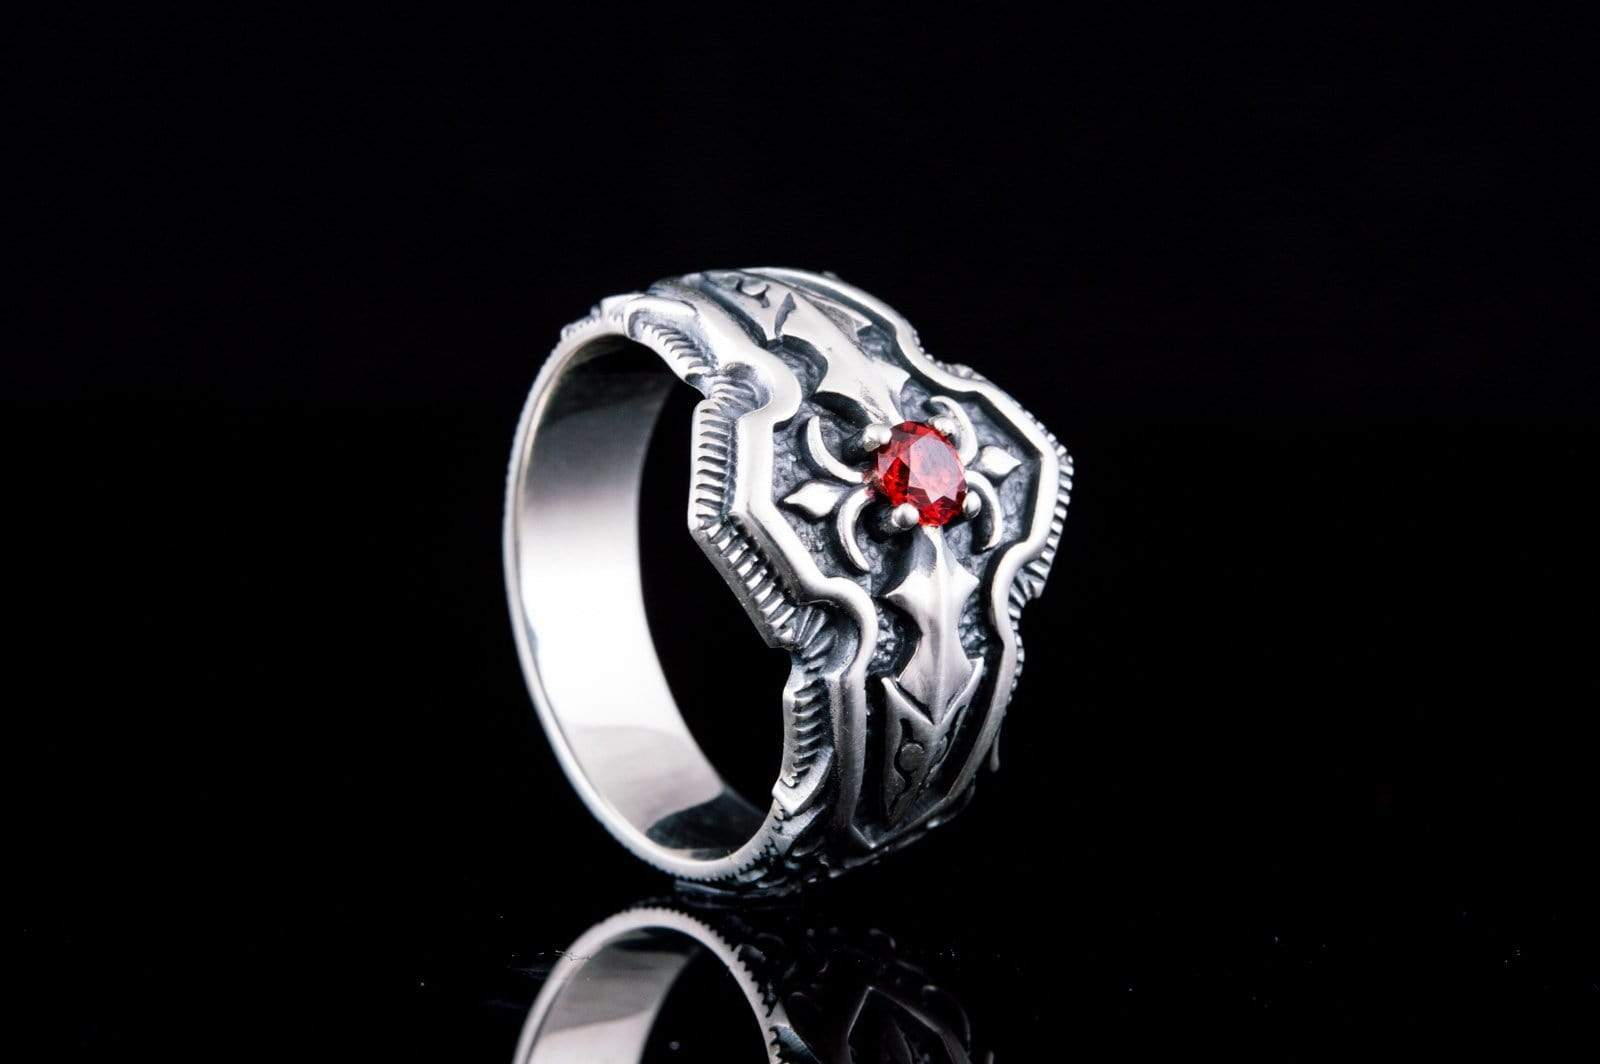 Ancient Smithy VW jewelry Ring with Red Cubic Zirconia Sterling Silver Handmade Jewelry